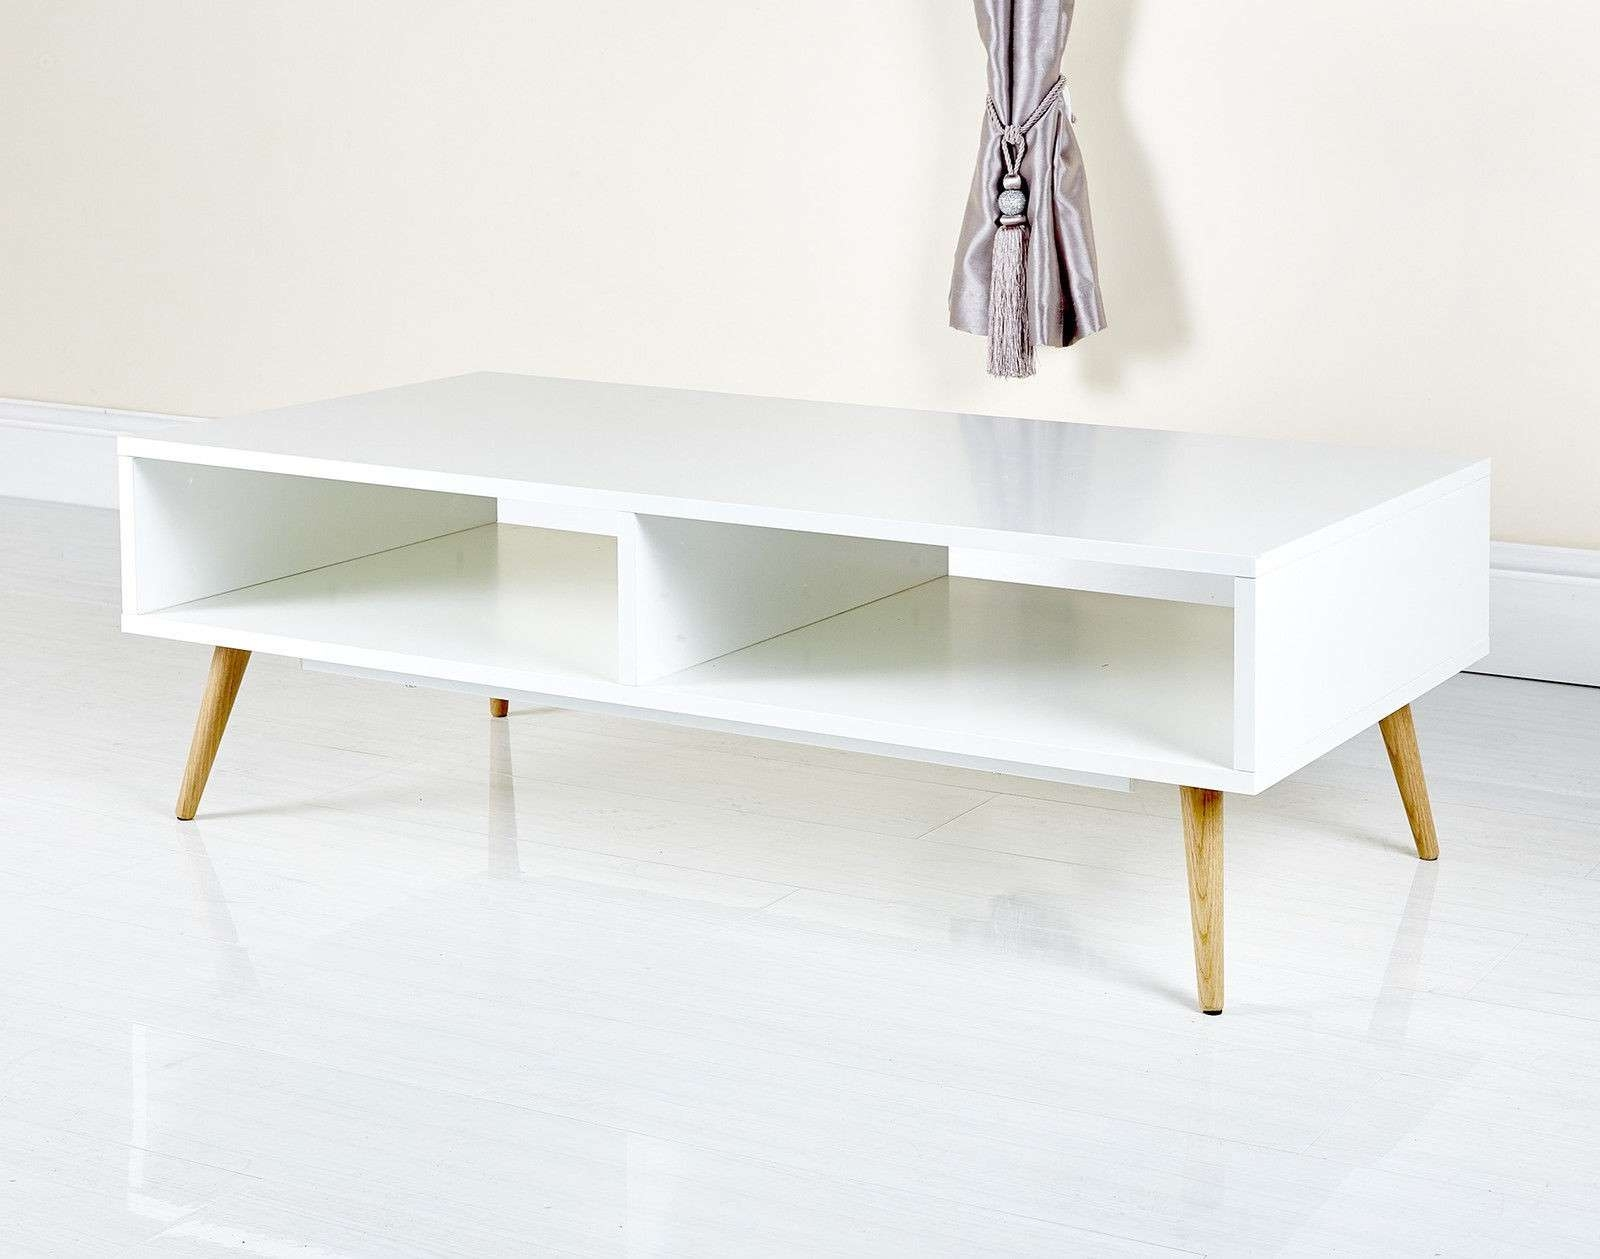 Scandinavian Modern Tv Stand From Abreo Abreo Home Furniture Throughout Scandinavian Tv Stands (View 8 of 15)